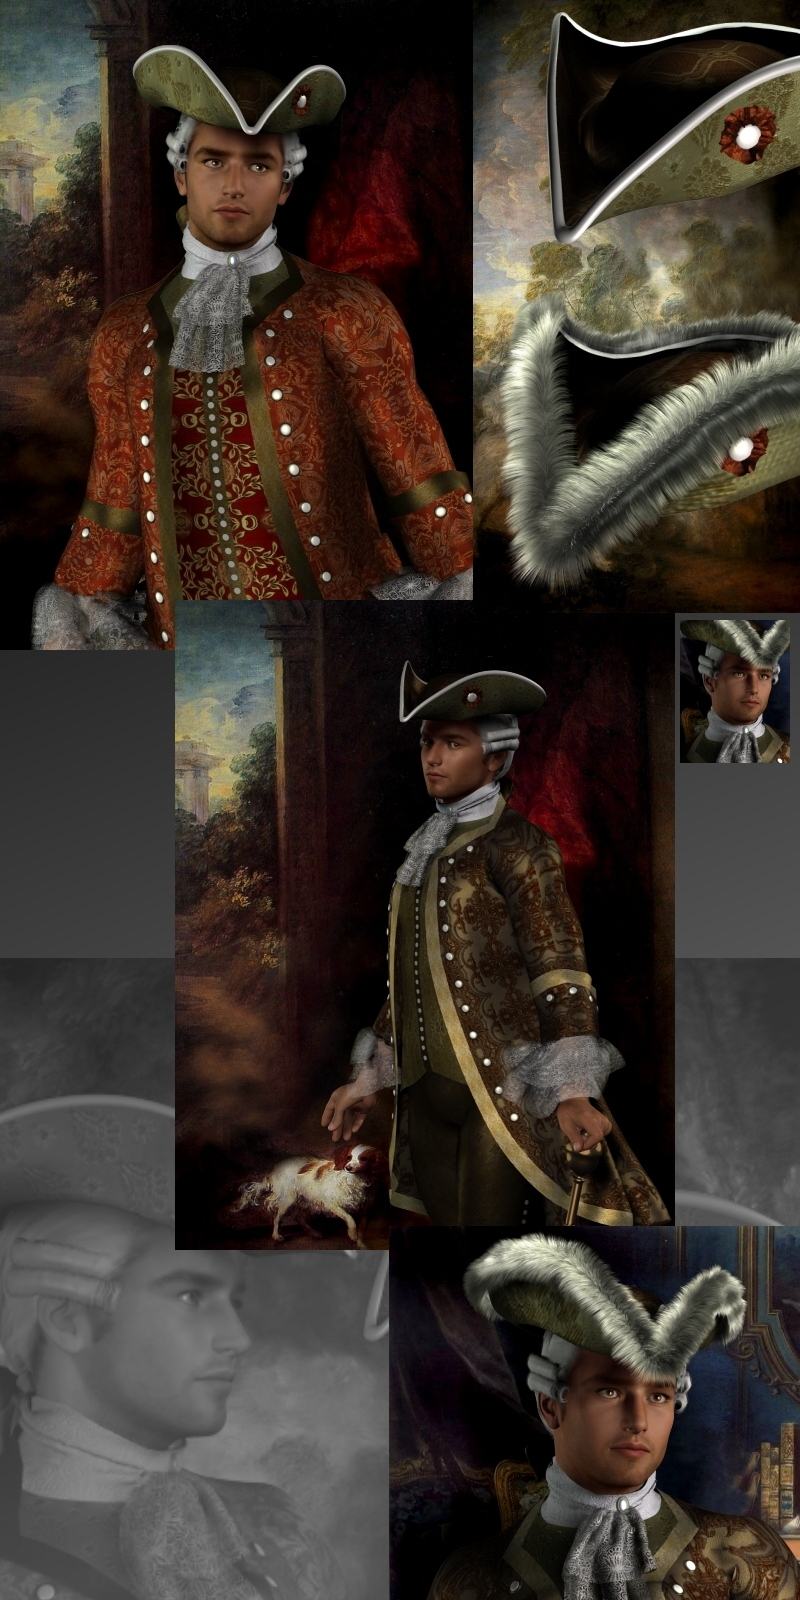 Francois-Philippe M4 18th Century Costume - Extended License by RPublishing